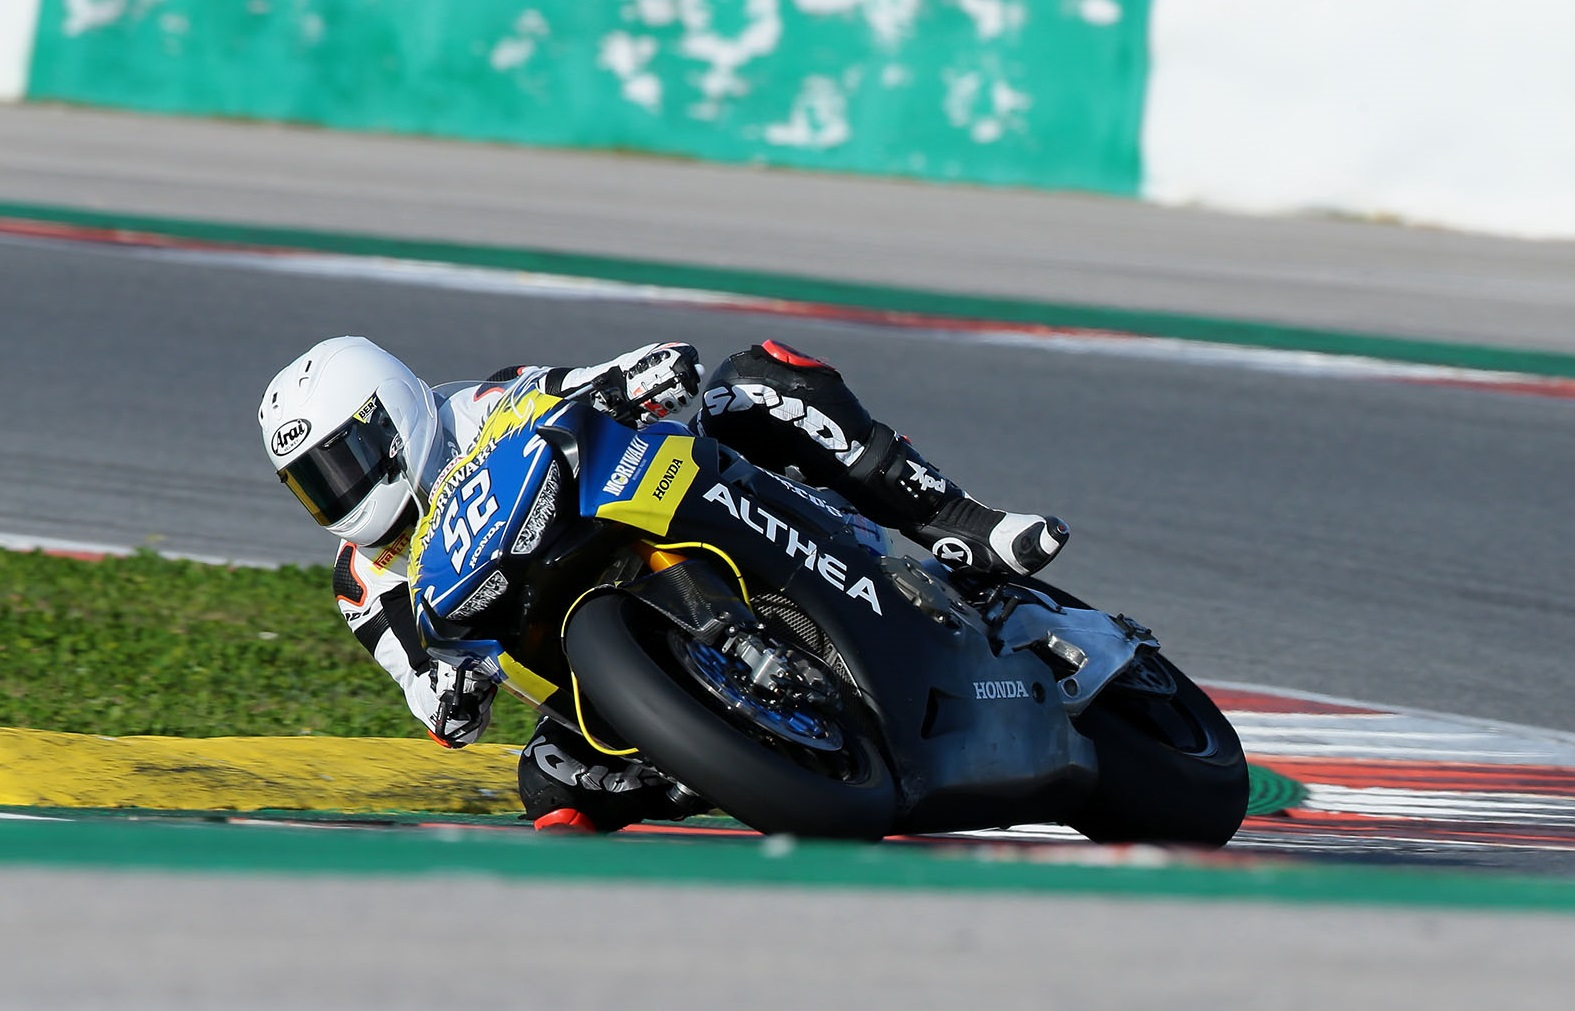 Il team Althea MIE Racing conclude i test invernali europei